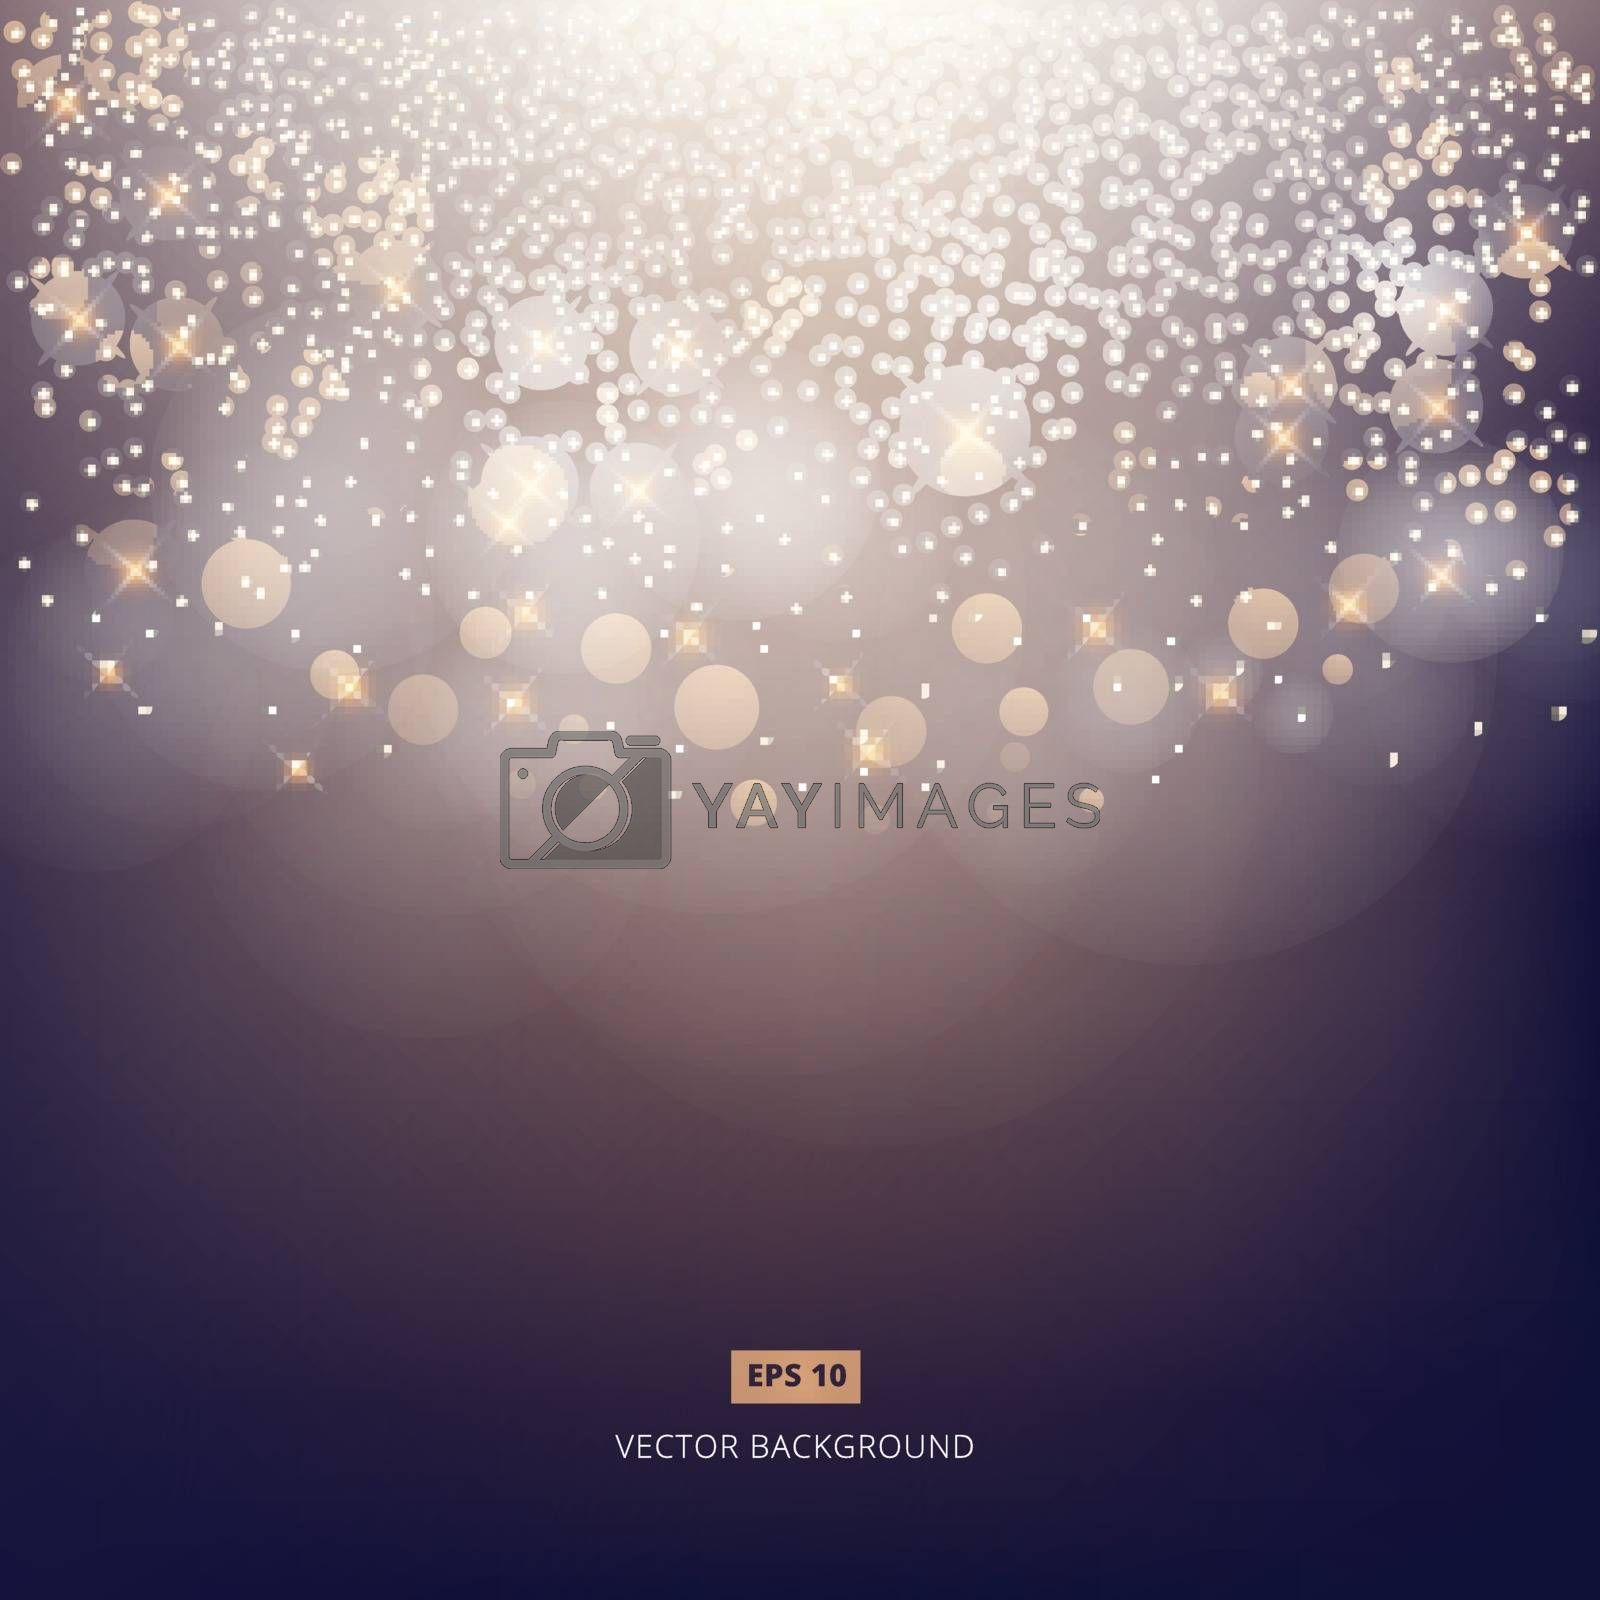 Abstract elegant shining dark background with bokeh, lights and fog background. Vector illustration